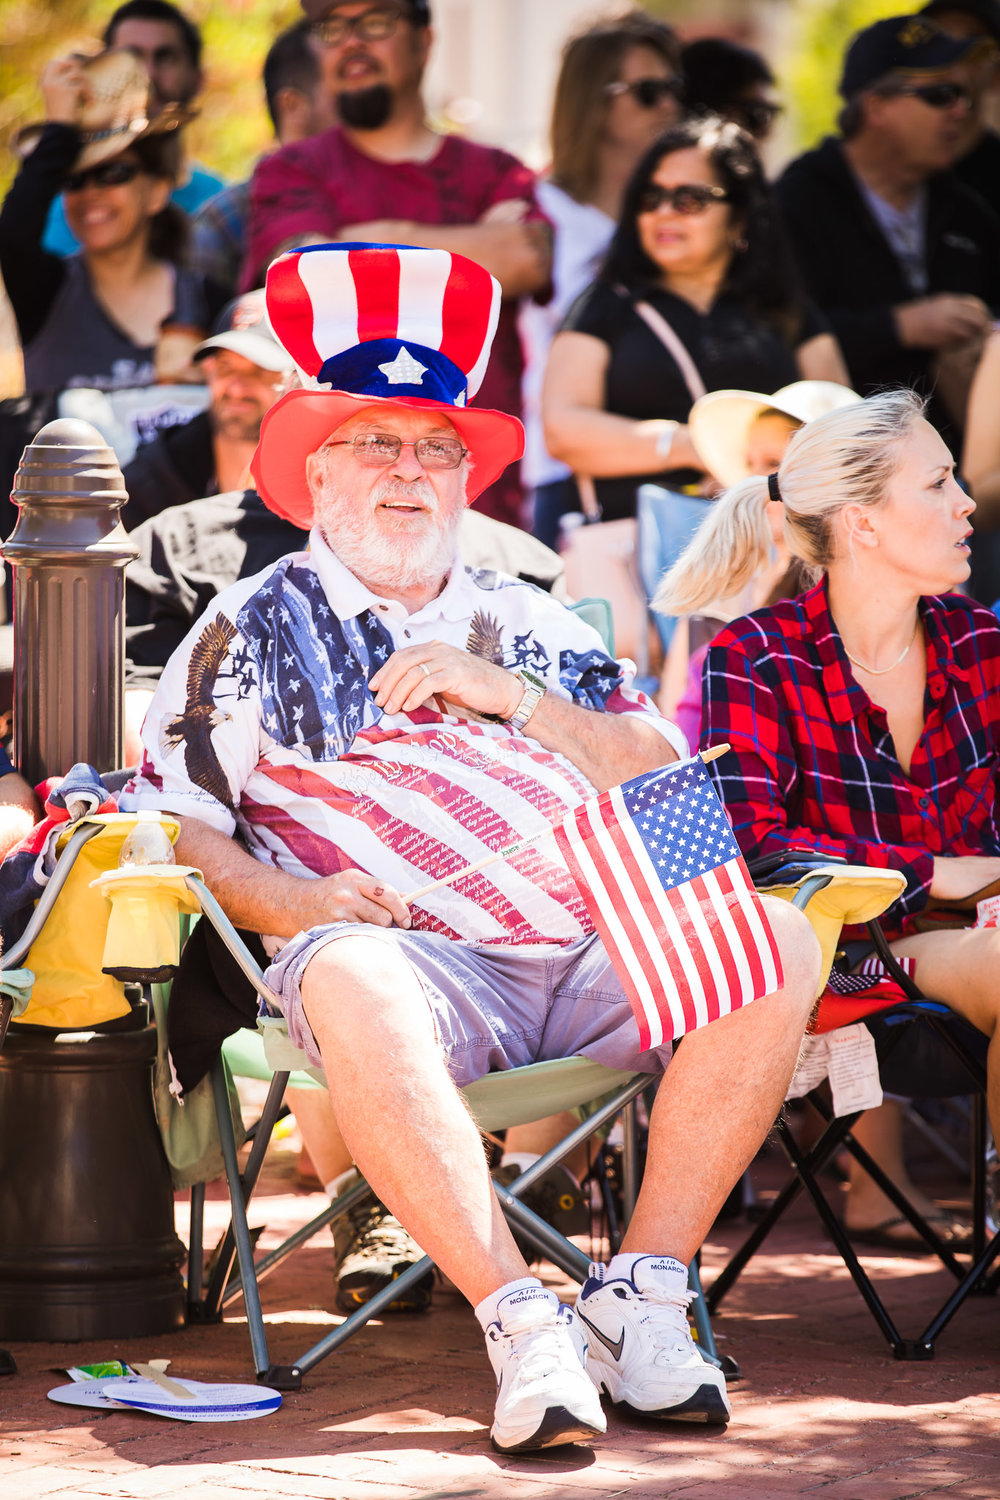 Archer_Inspired_Photography_Morgan_Hill_California_4th_of_july_parade-135.jpg